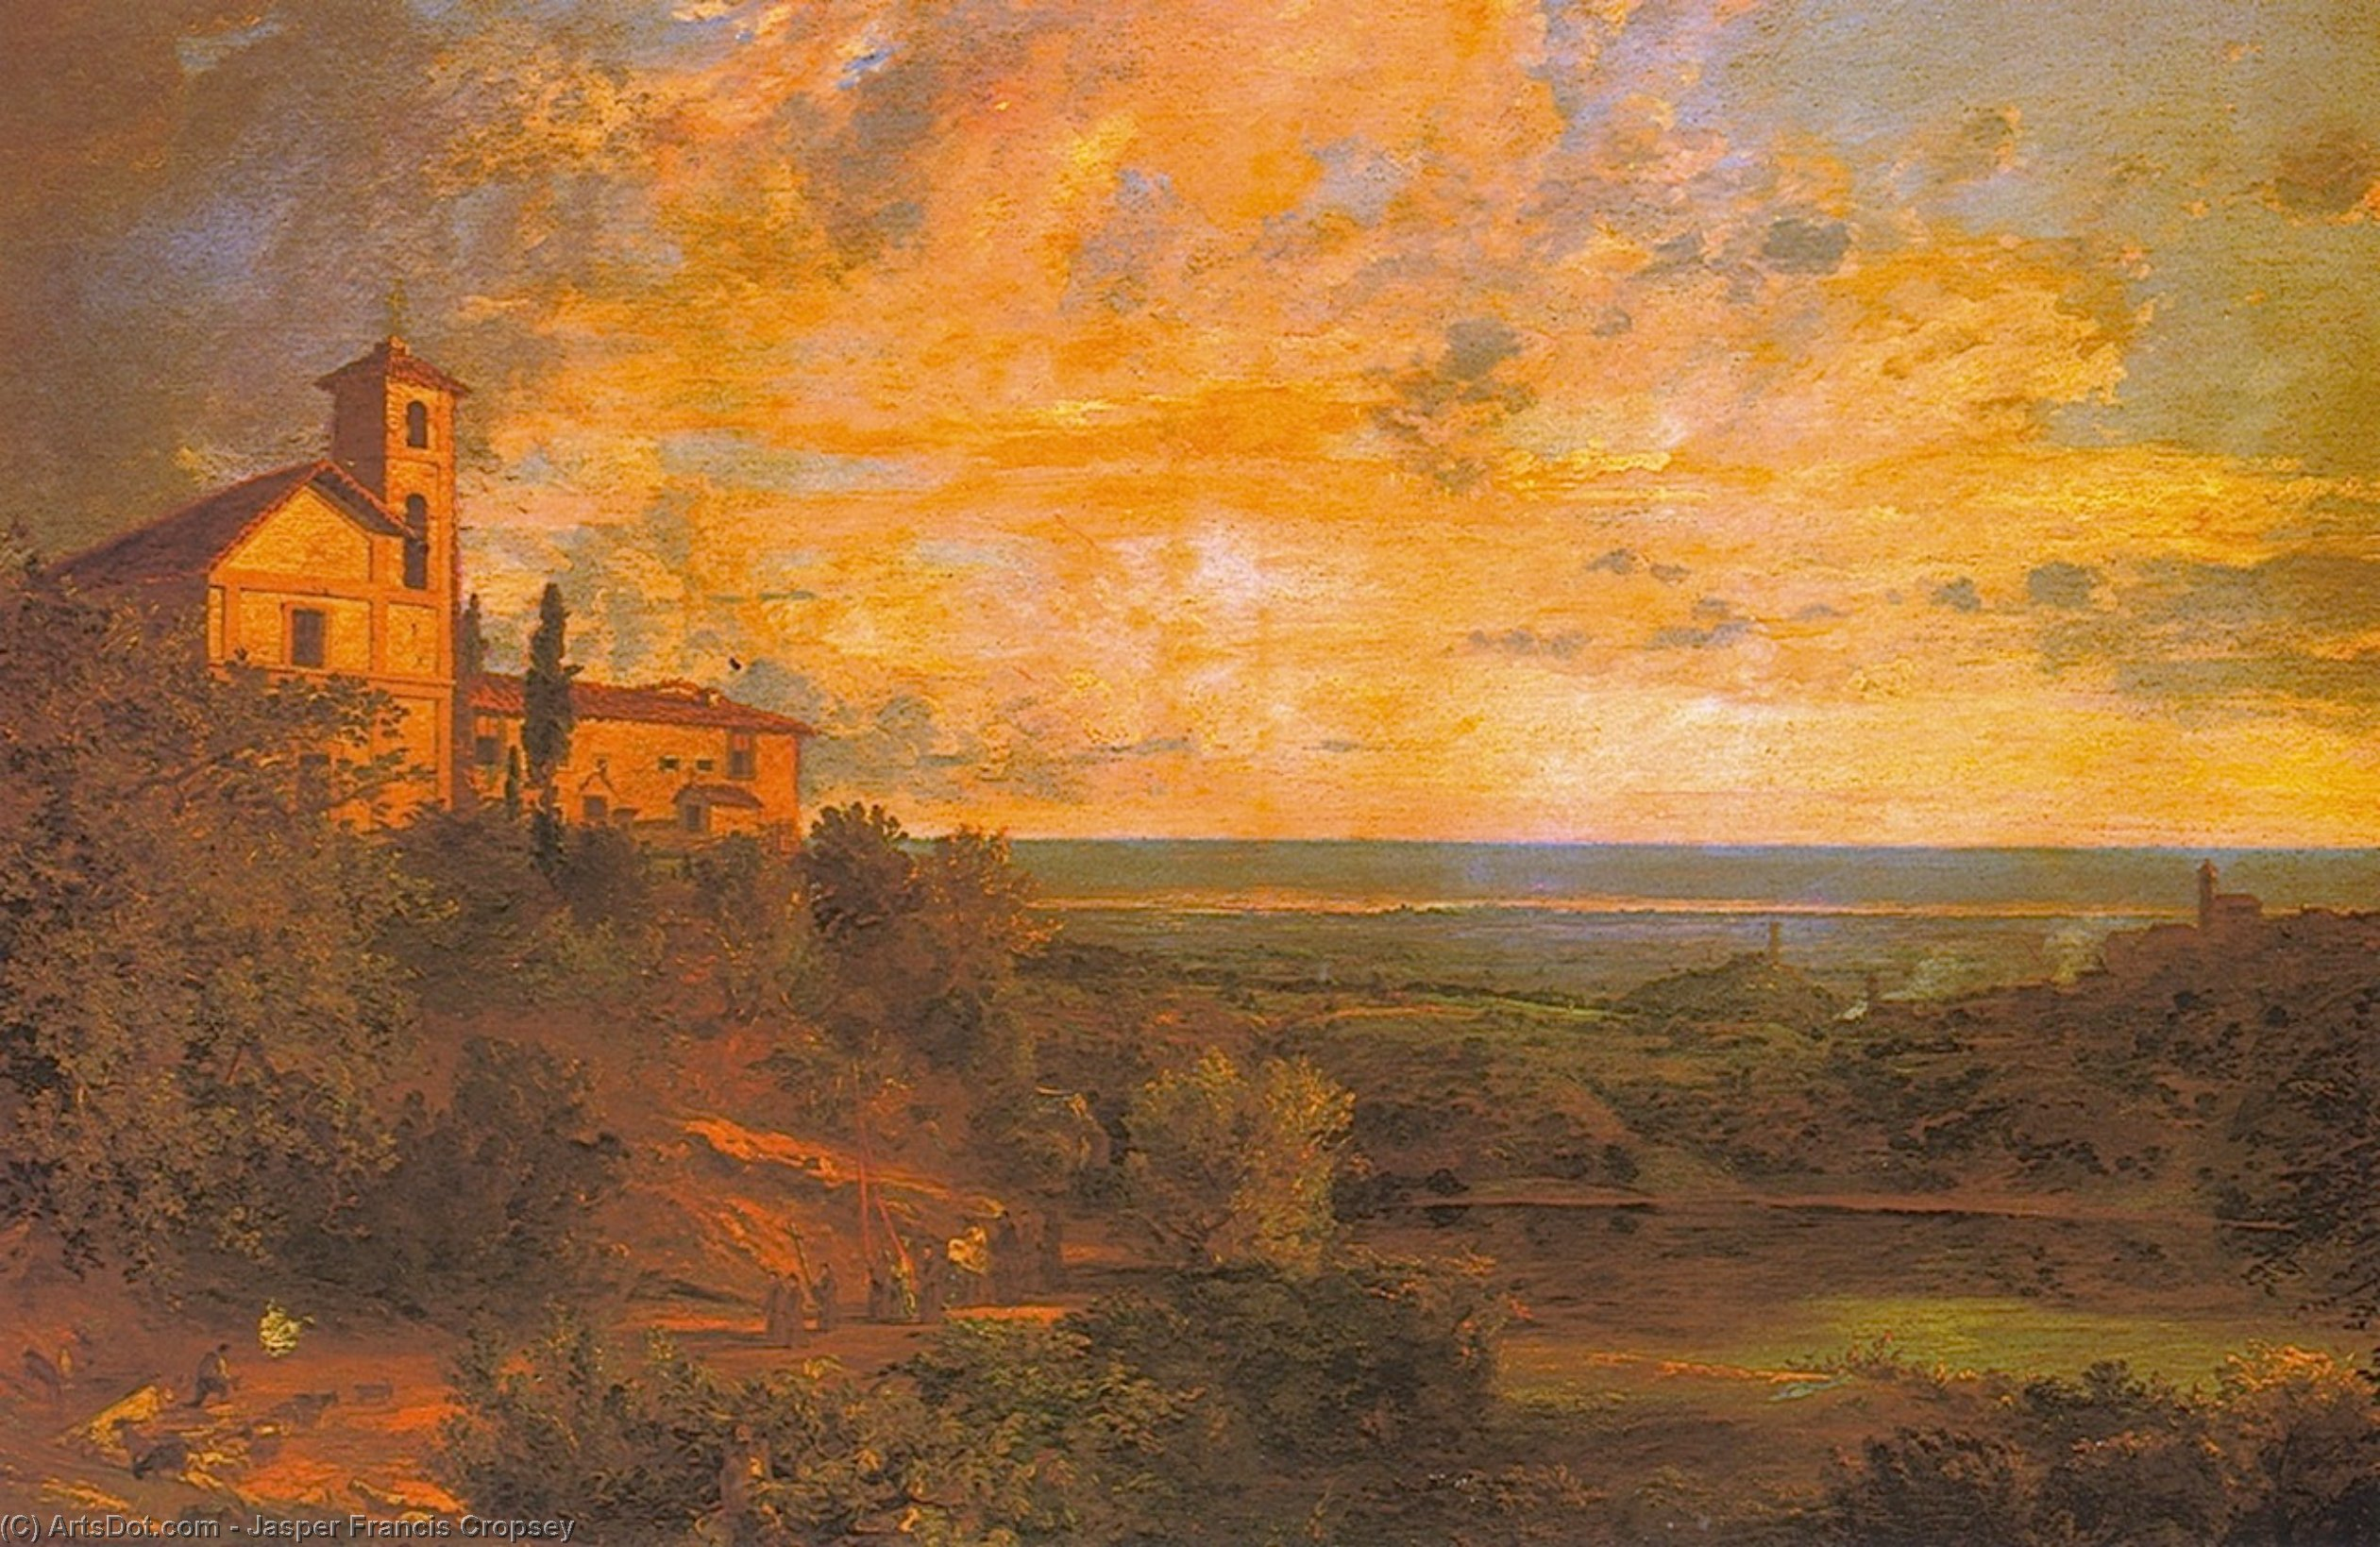 Procession at Nemi, Italy, Oil On Canvas by Jasper Francis Cropsey (1823-1900, United States)